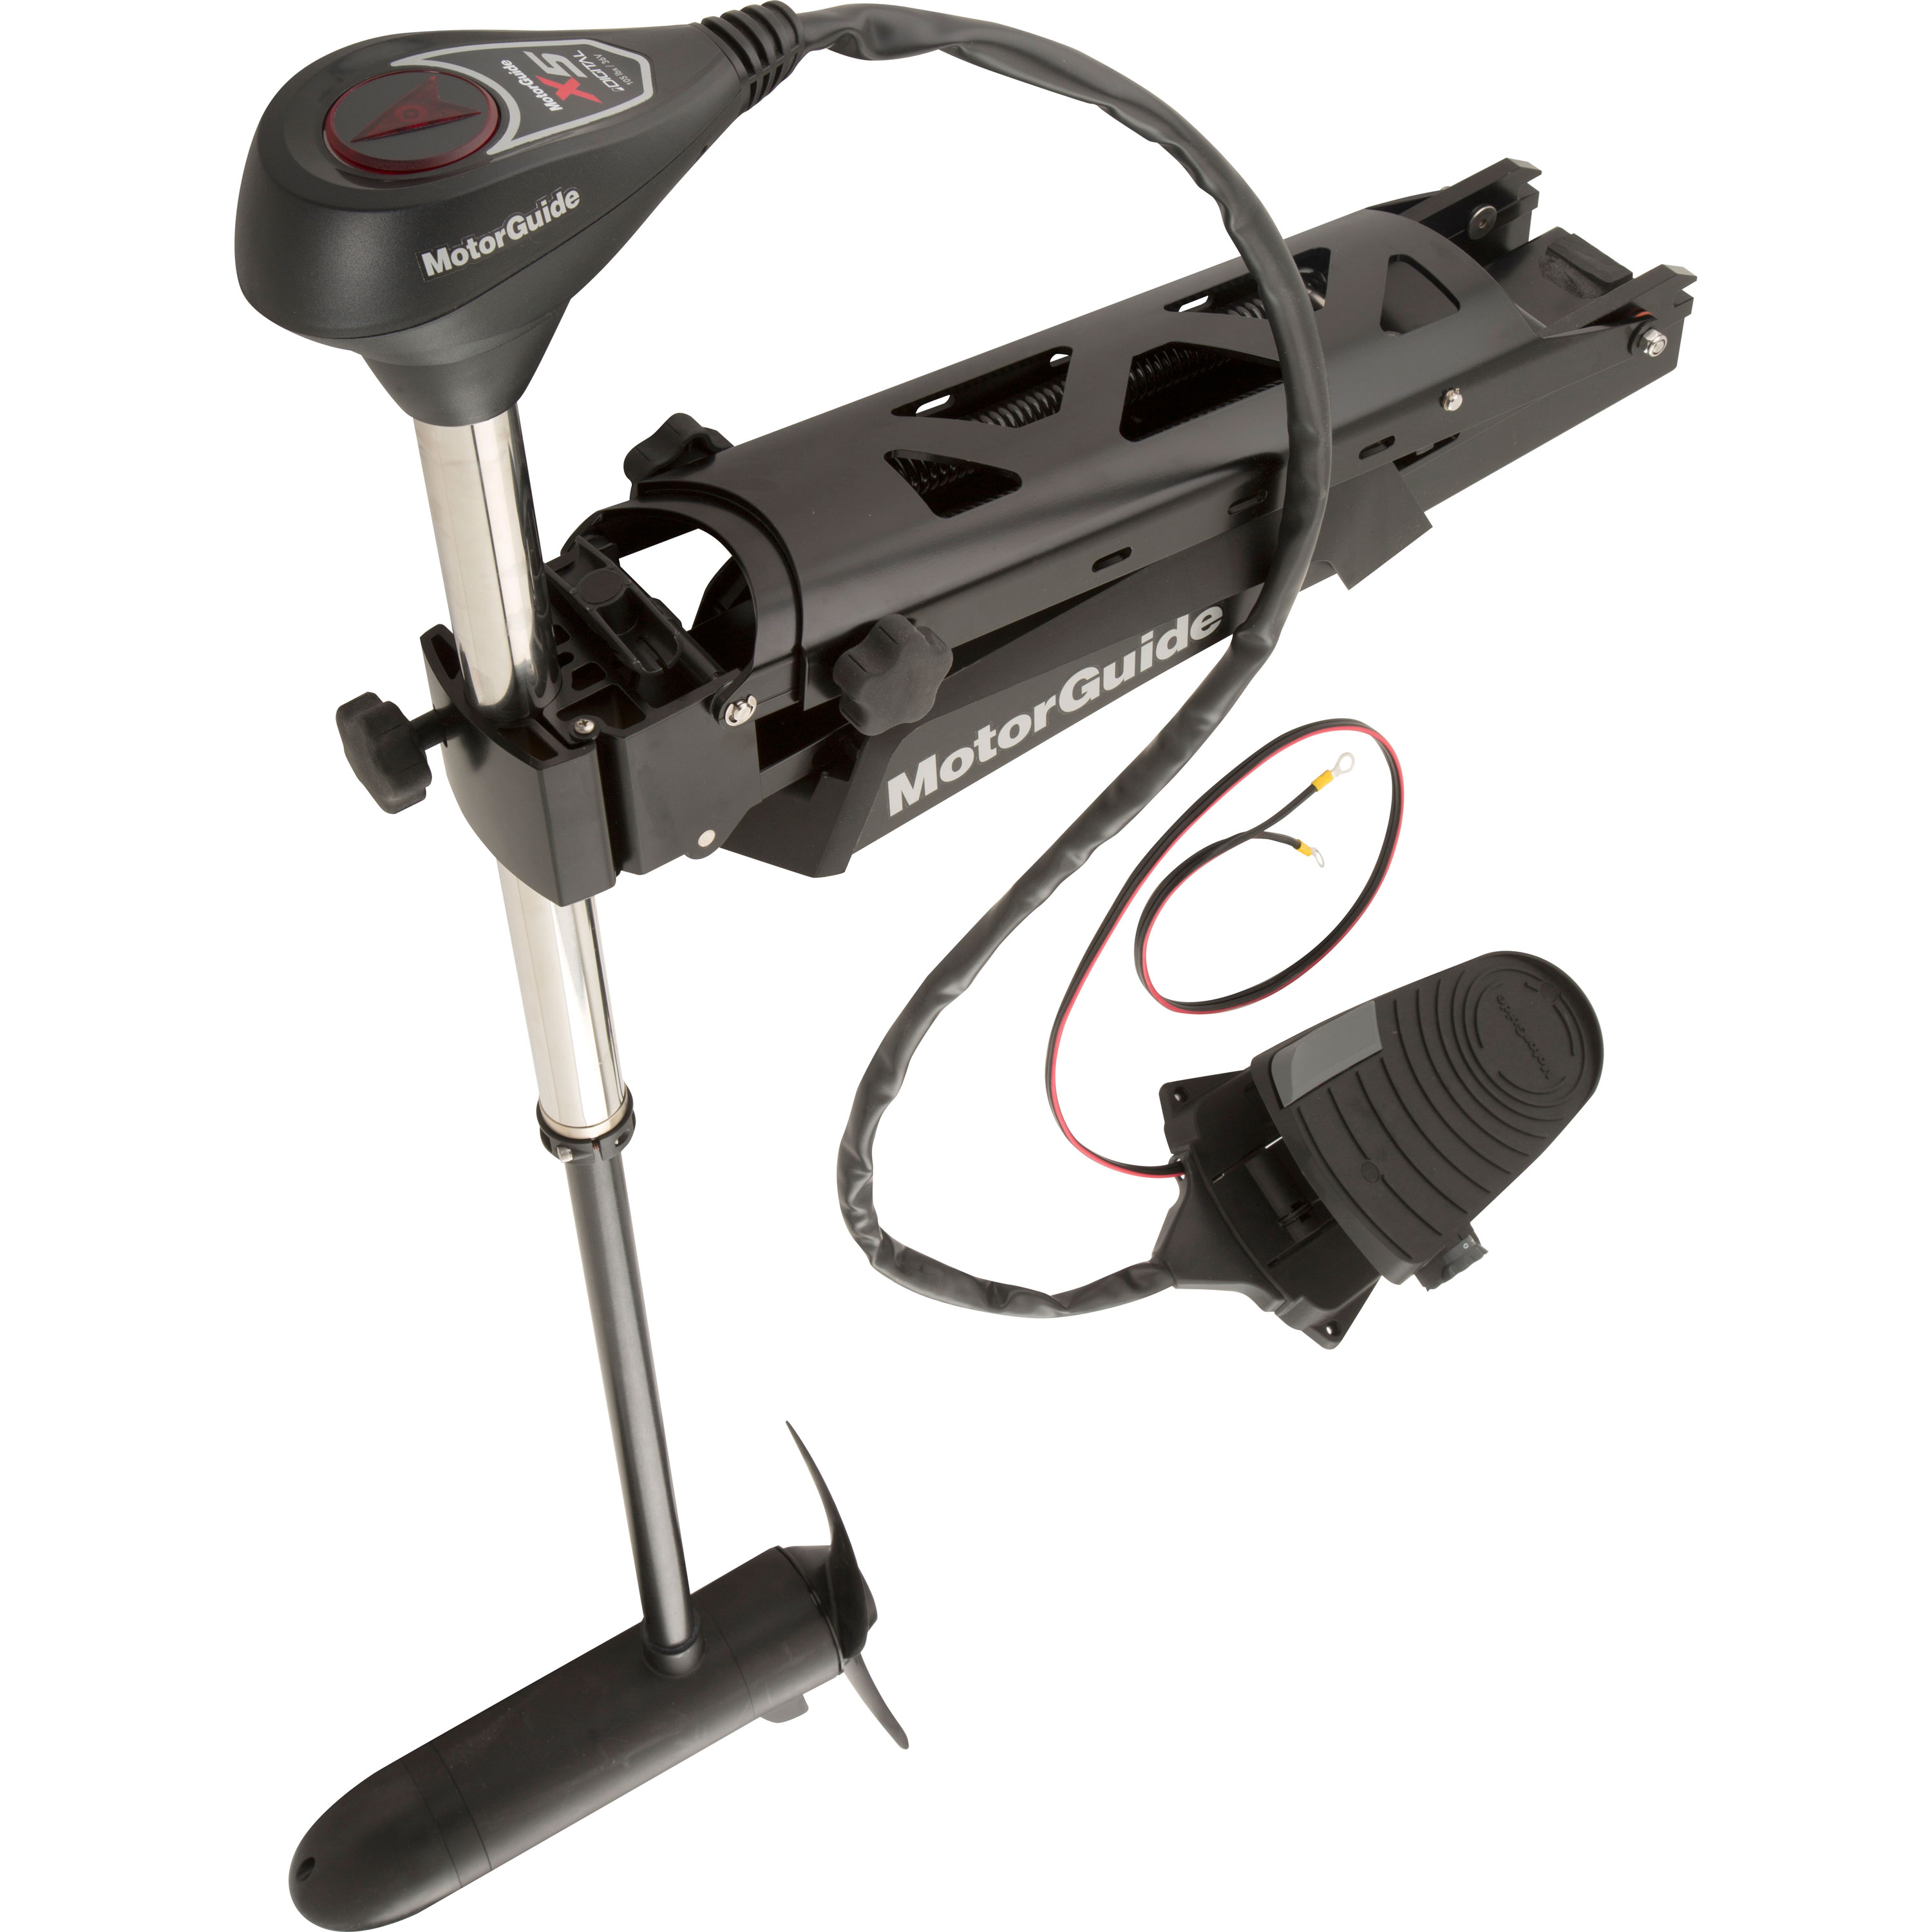 "Motorguide 940500010 Motorguide X5 55Fw 45"" 12V Foot-Operated"